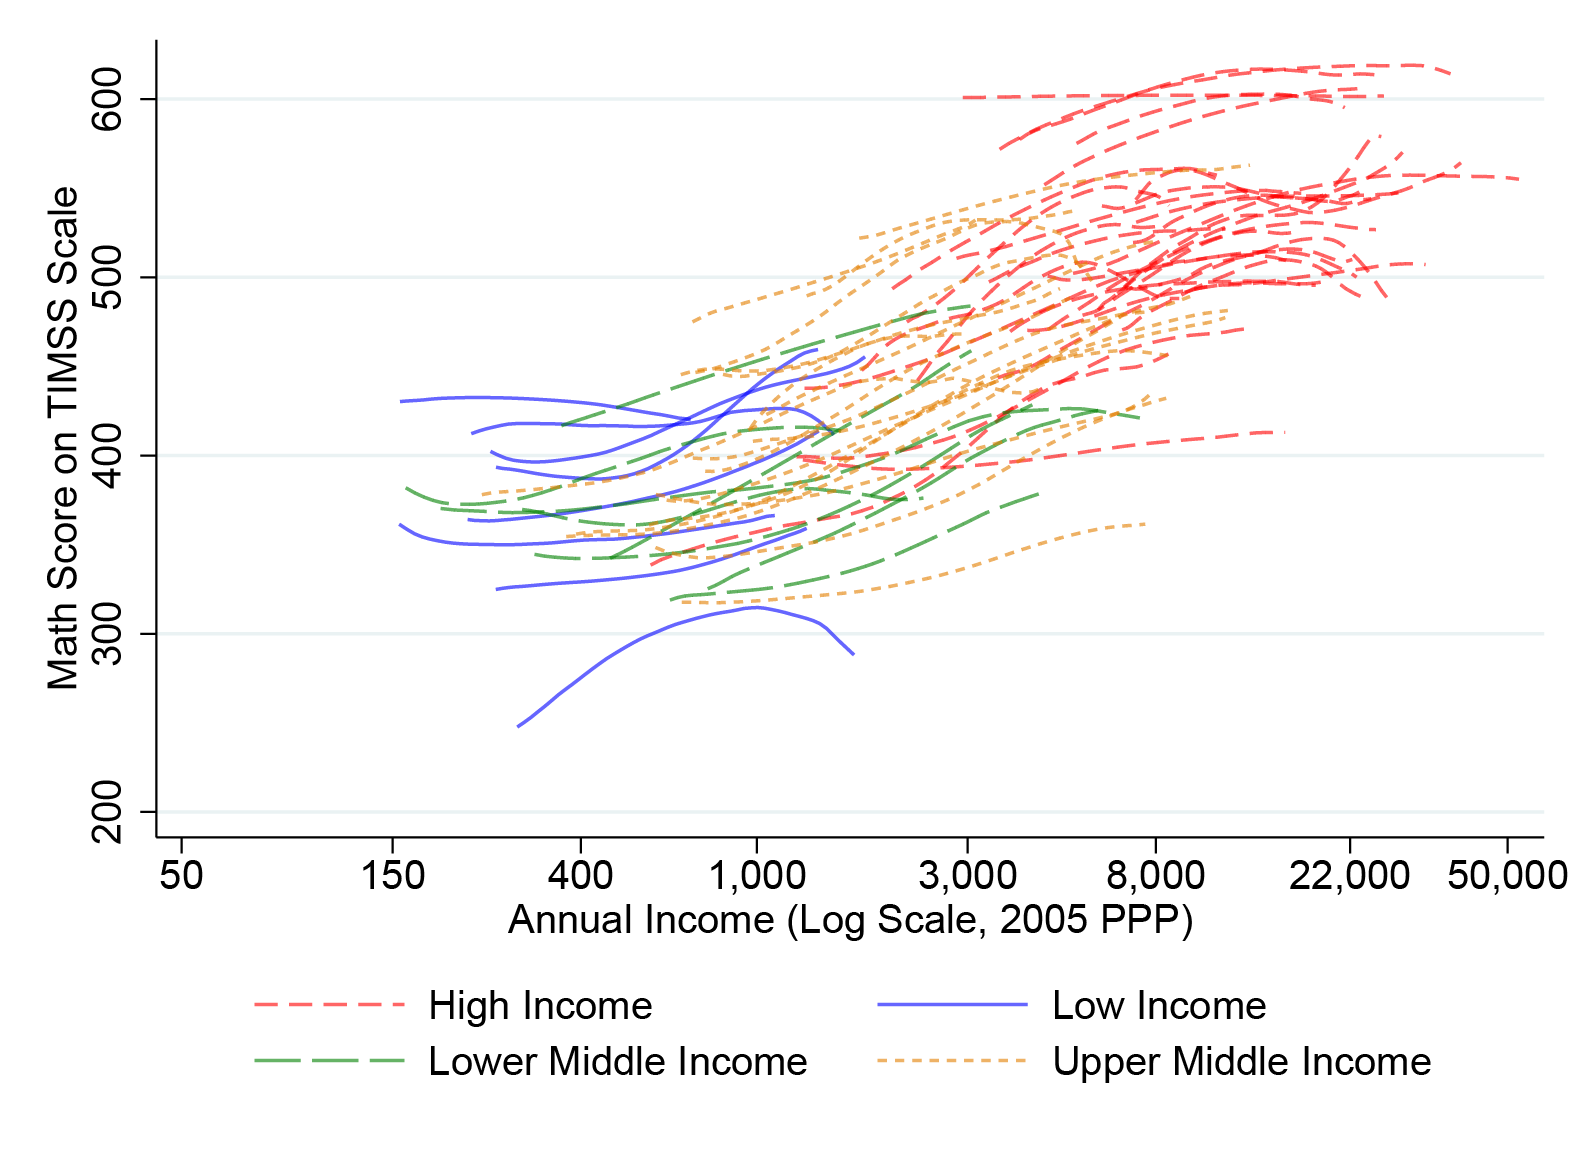 Chart of annual income vs math scores, with a line for each country across its income distribution. It shows that where richer and poorer countries overlap (i.e. the rich in a low-income country and the poorer in a middle income country), richer countries tend to do better on math scores